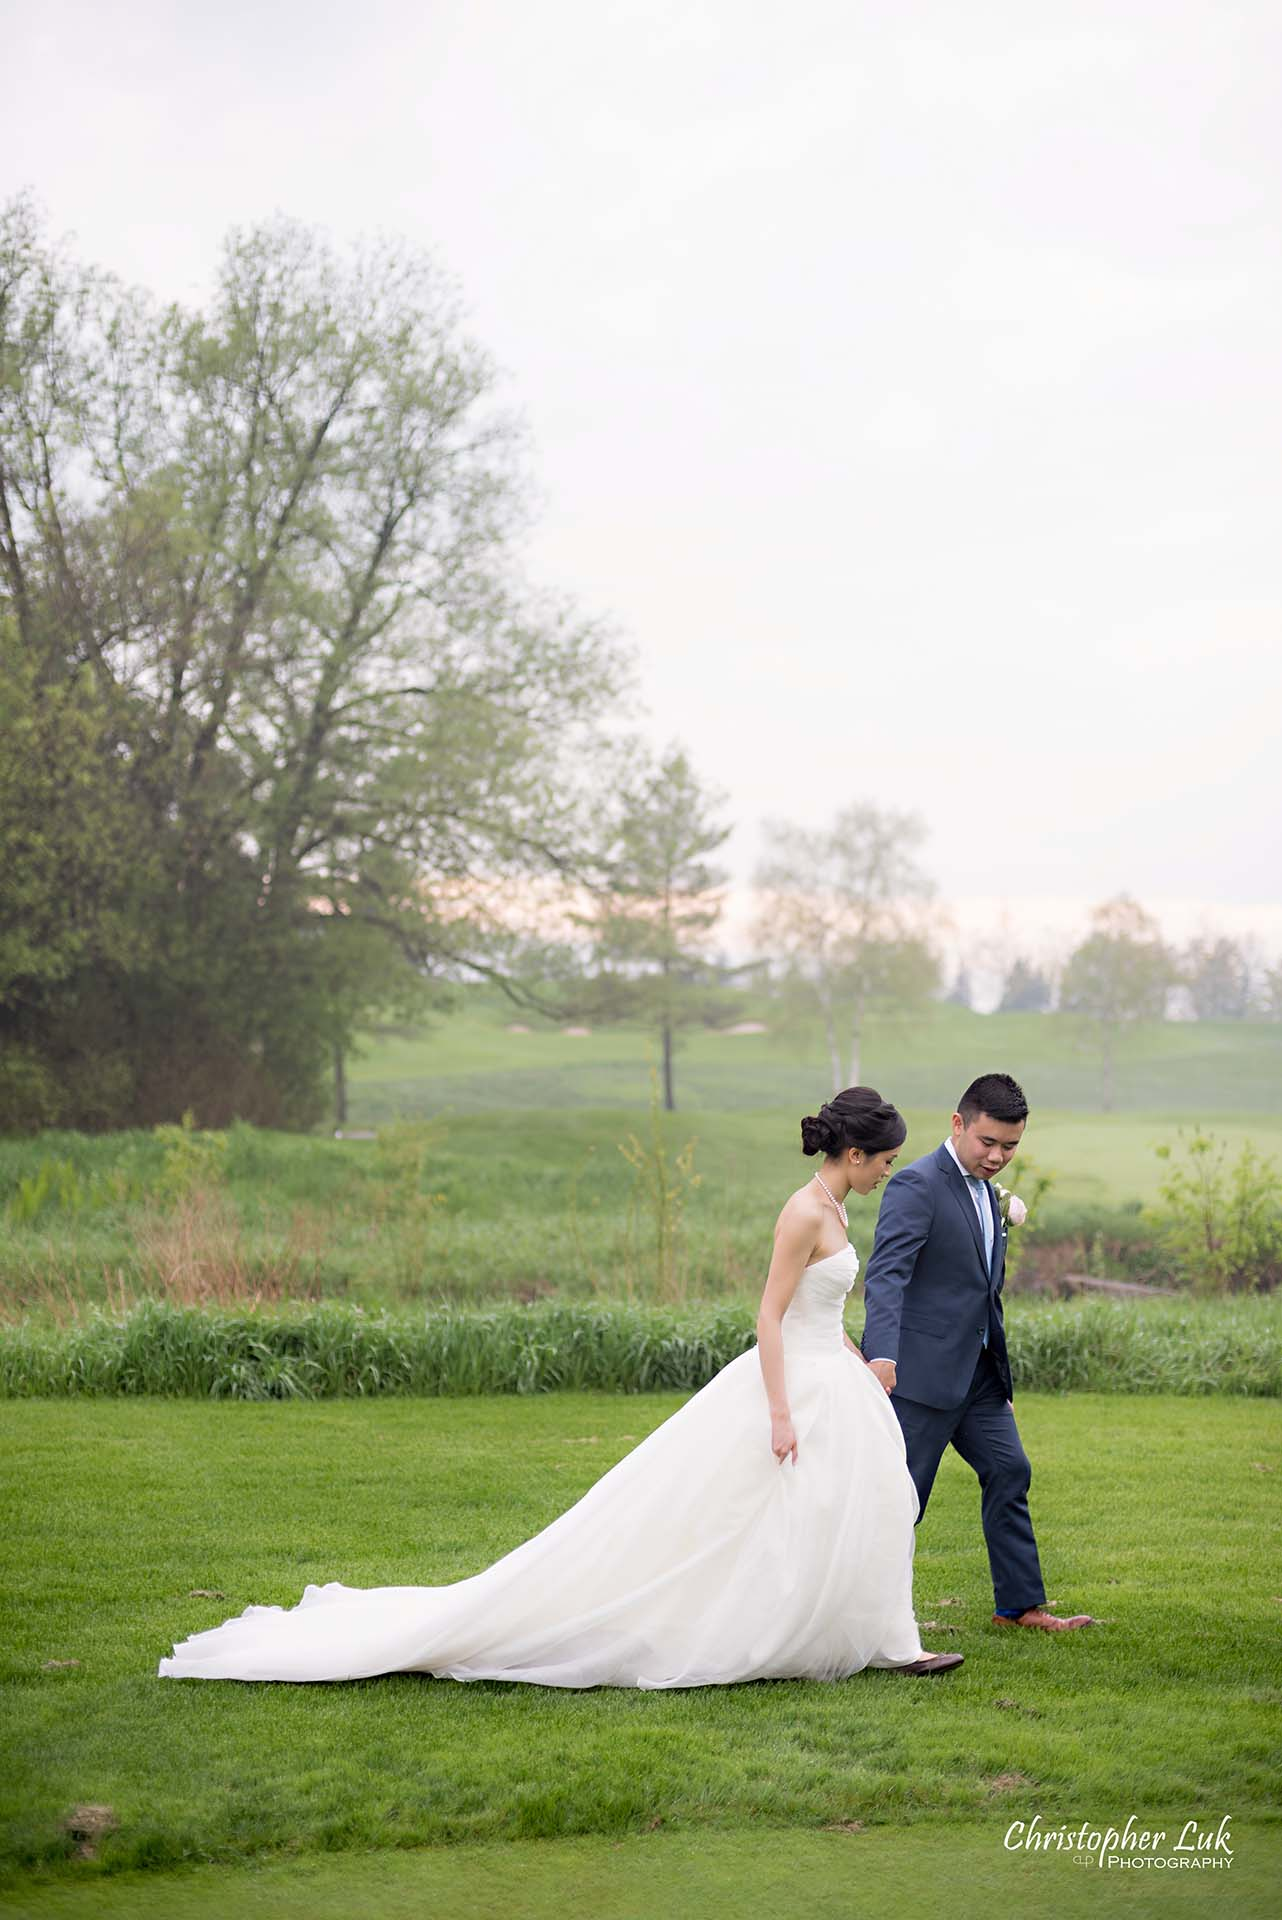 Christopher Luk Toronto Wedding Photographer Angus Glen Golf Club Markham Great Hall Dinner Reception Event Venue Green Field Sunset Bride Groom Natural Candid Photojournalistic Walking Together